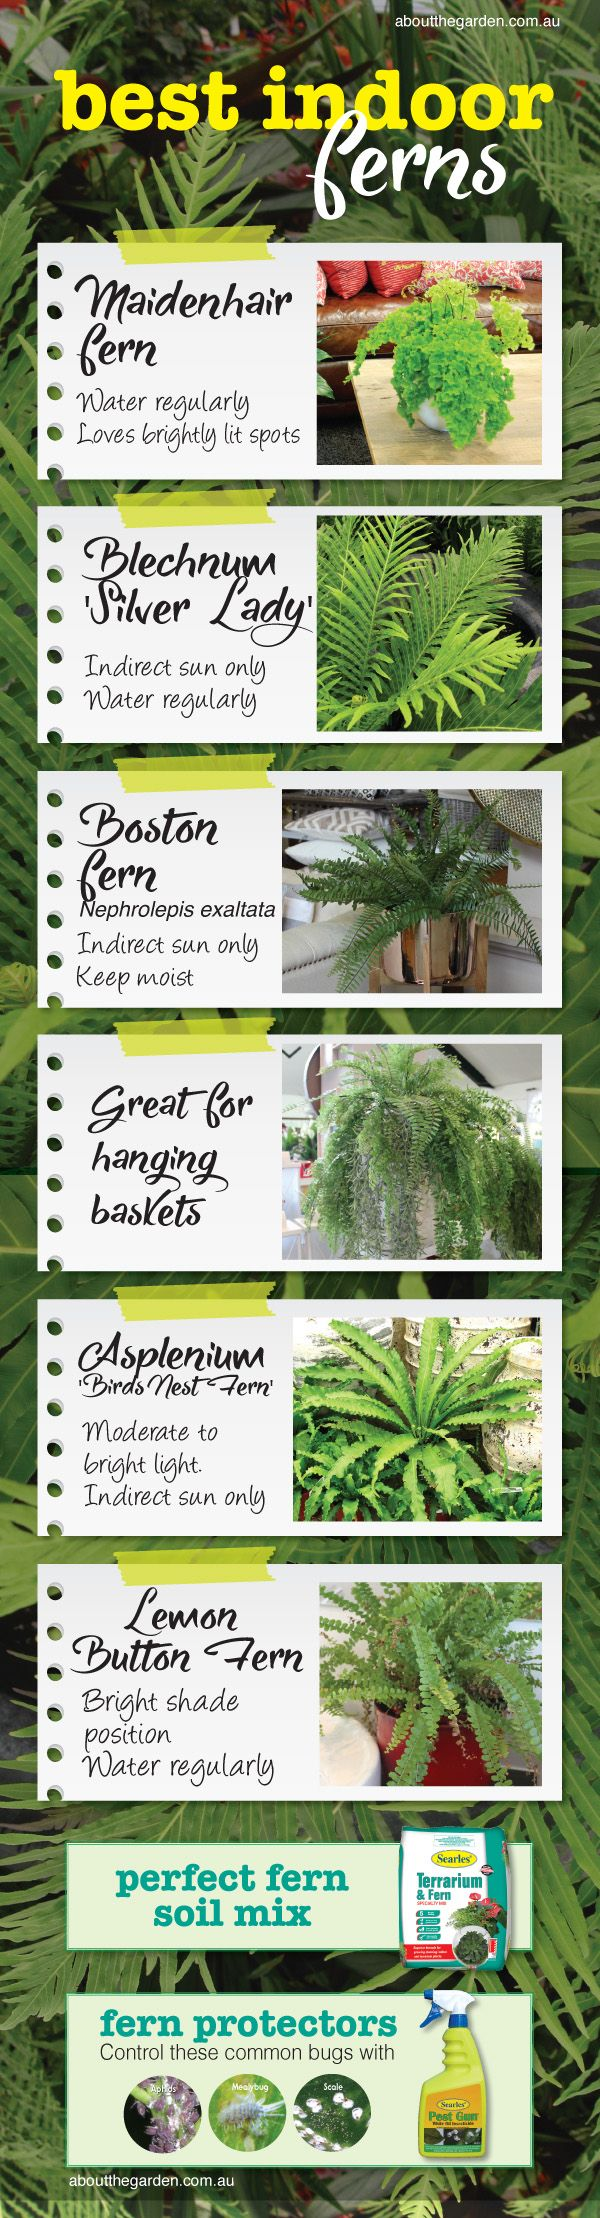 Best Indoor Ferns for home decor in Australian gardens #aboutthe